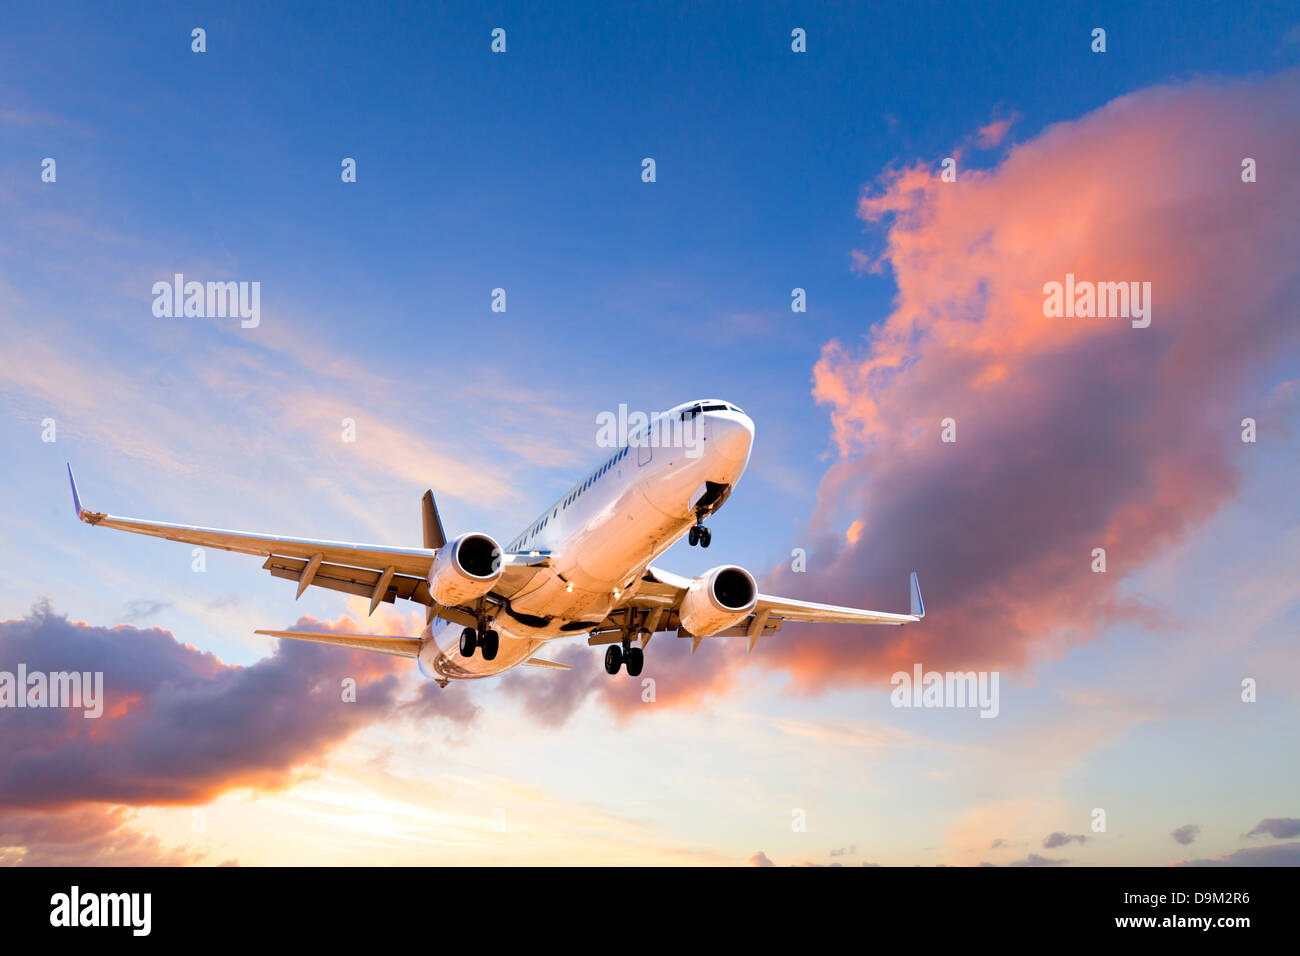 Aeroplane Coming in to Land at Sunset - Boeing 737 coming in to land at sunset. - Stock Image